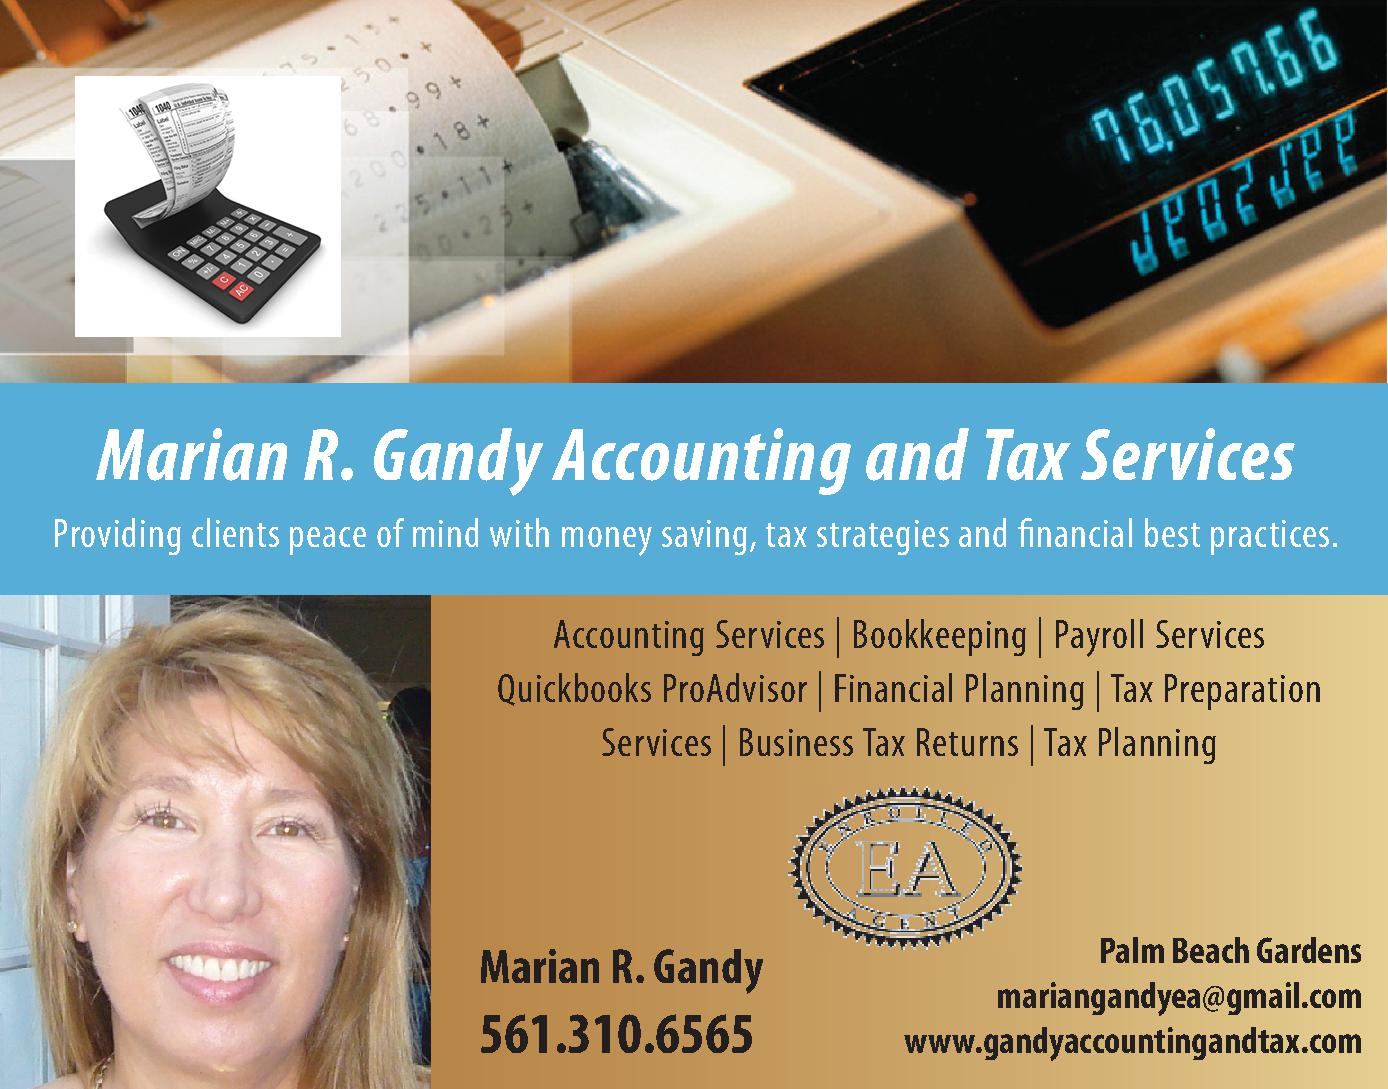 Gandy Accounting and Tax Consulting